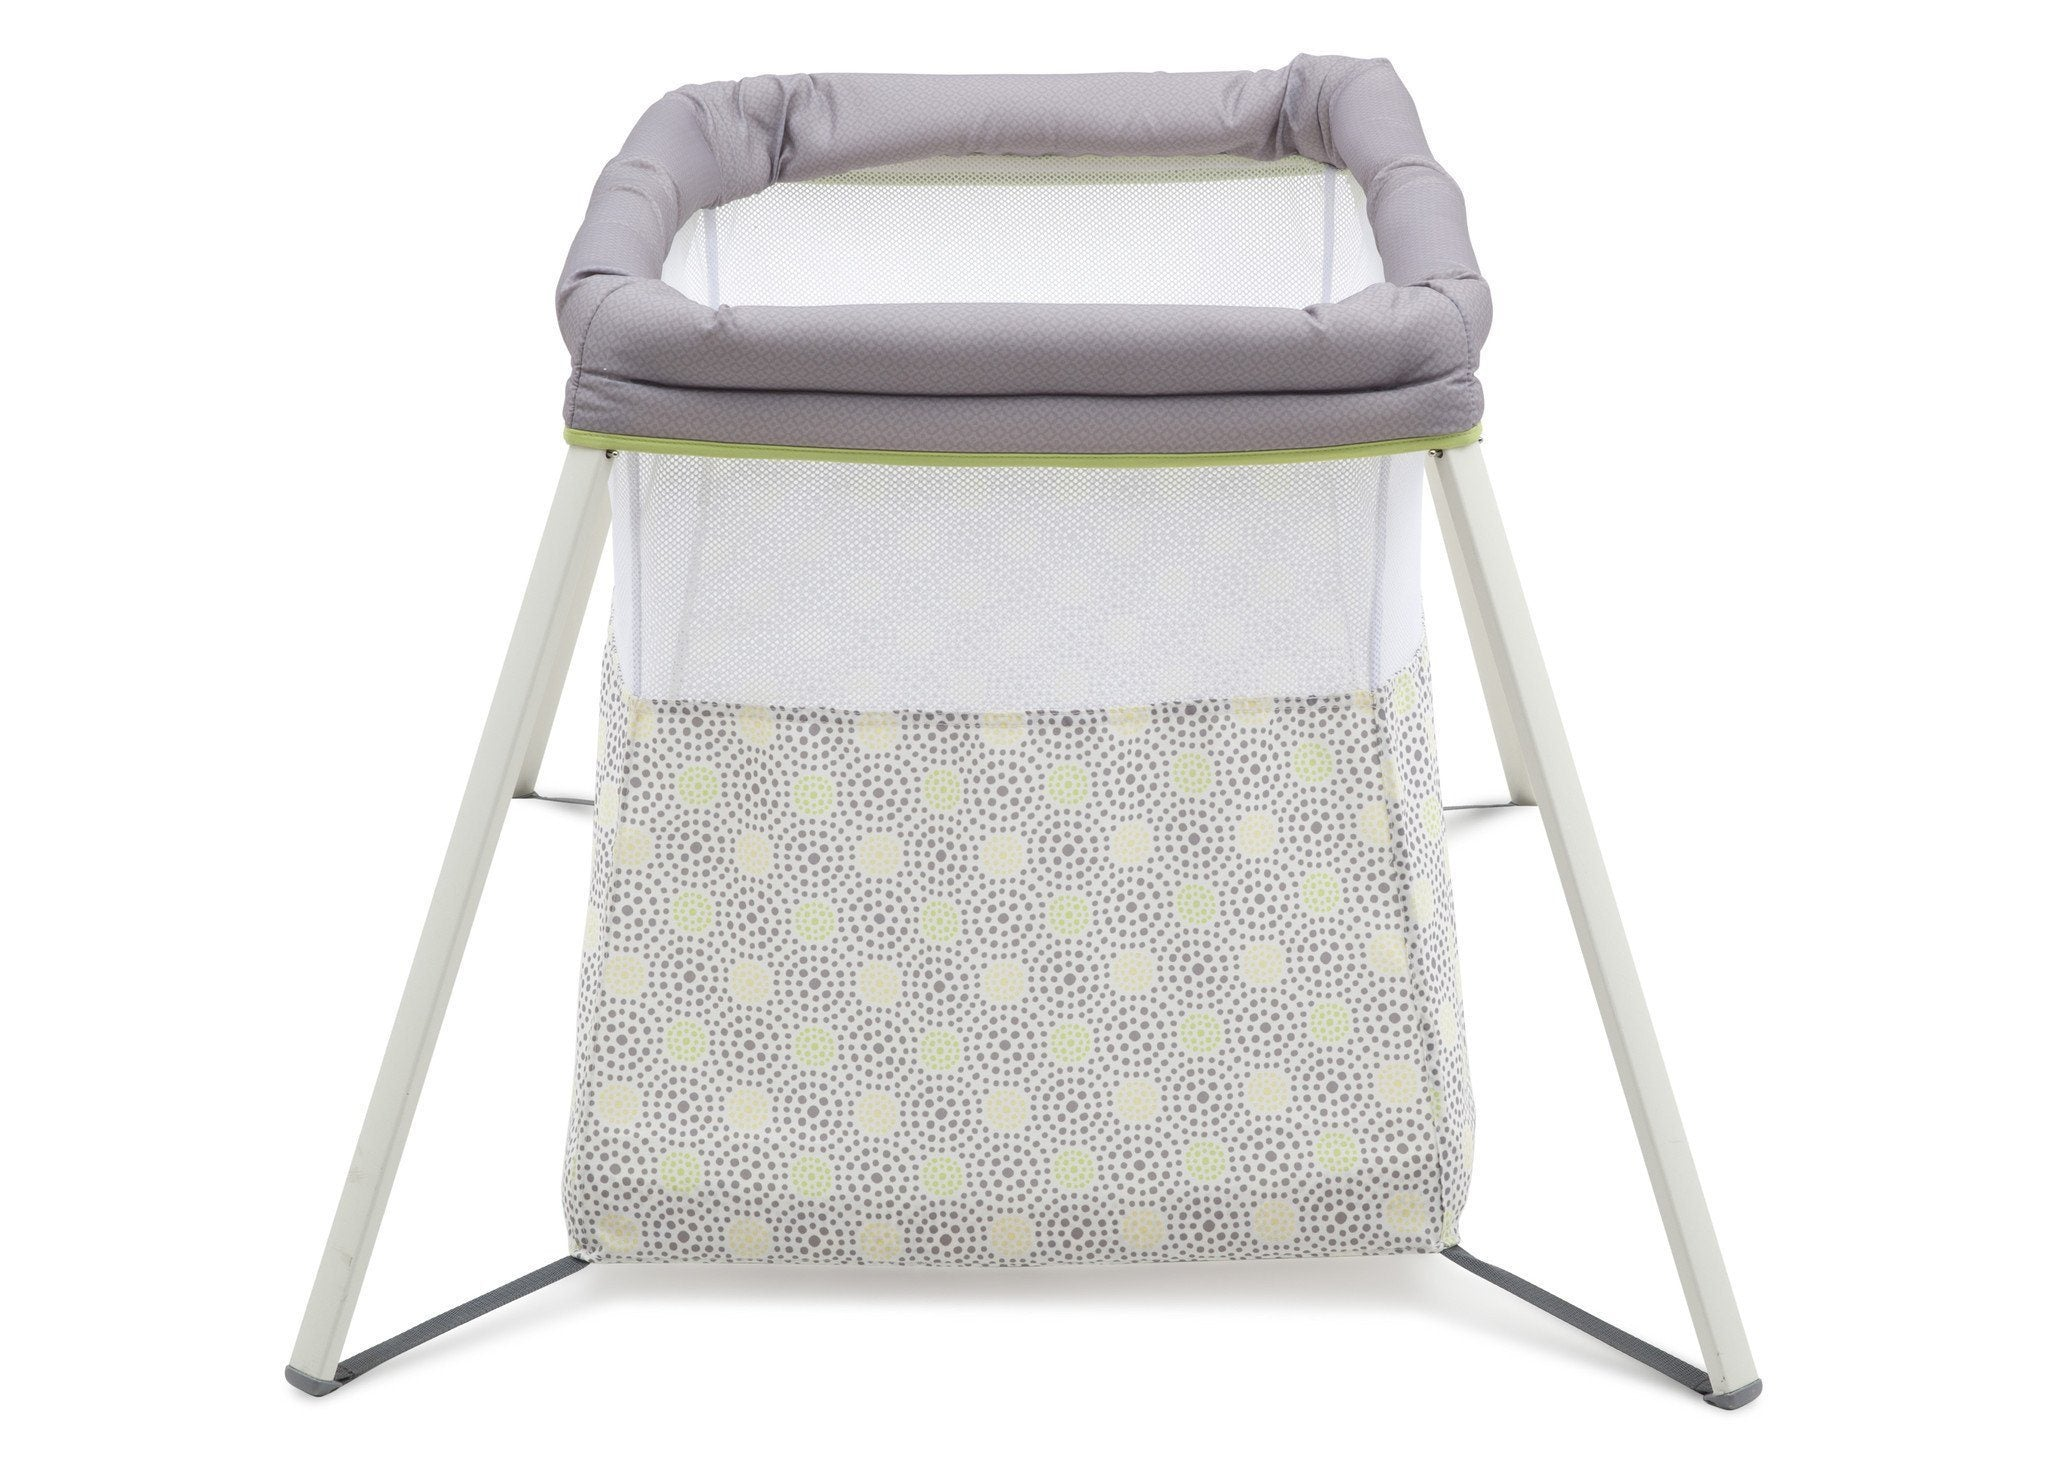 Delta Children Mosaic (325) Viaggi Playard, Front View a3a